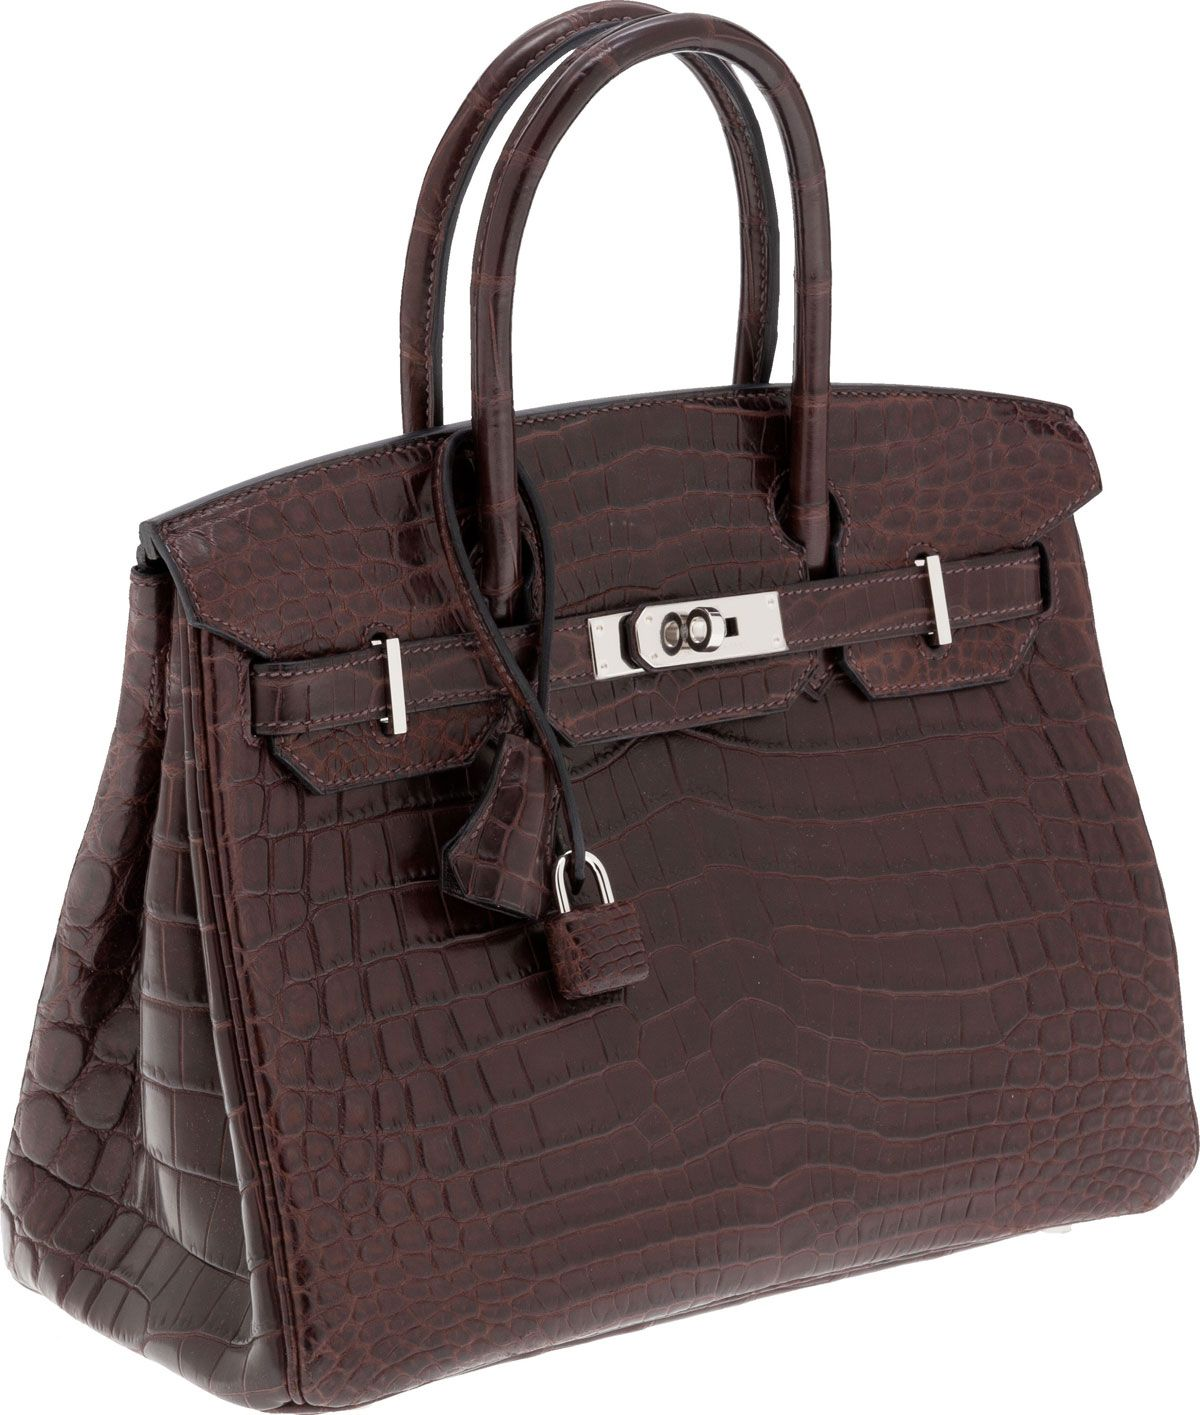 Hermes Rules at Largest Luxury Accessories Auction Ever: $3.2 Million